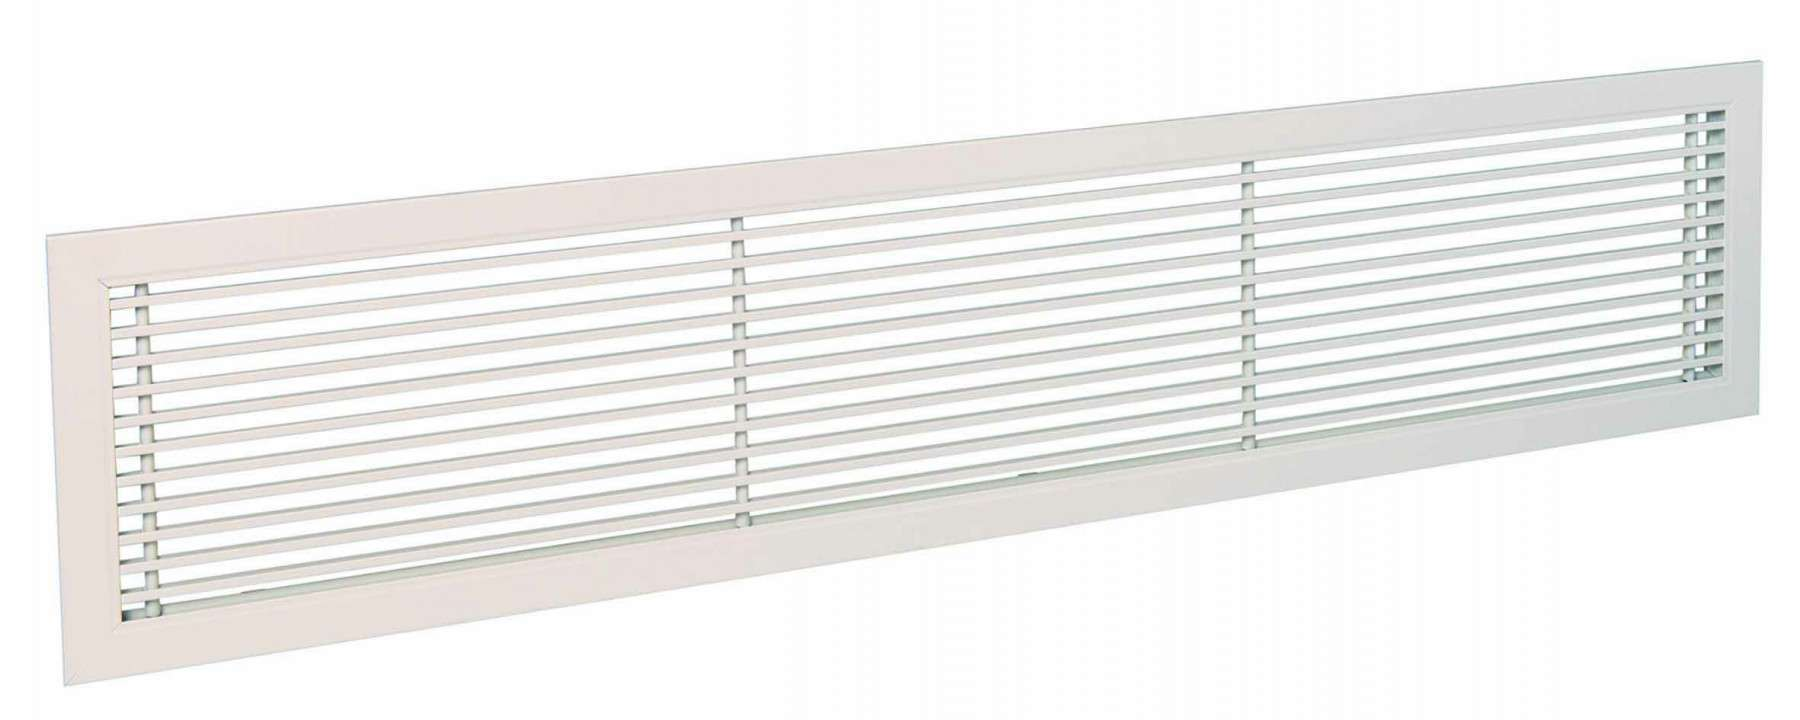 Grilles intérieures GRIDLINED WALL 600X100 ANOD Aldes 11050246